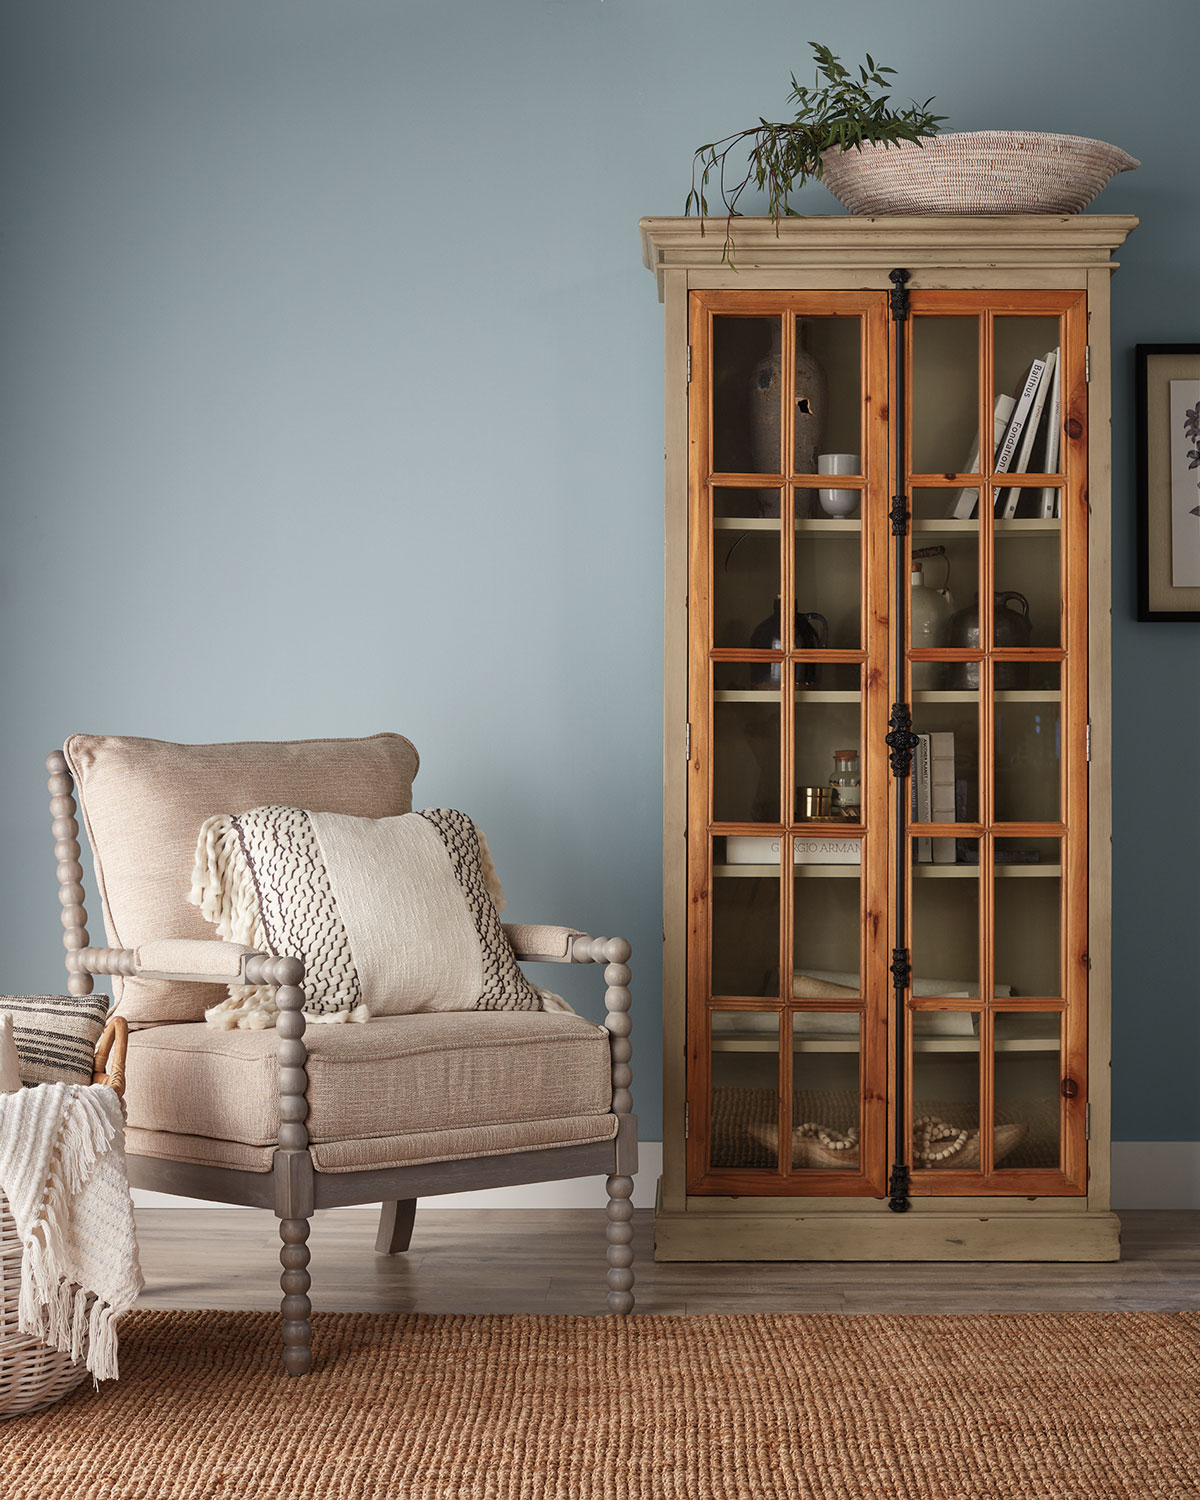 wooden cabinet with glass doors and books inside, armchair